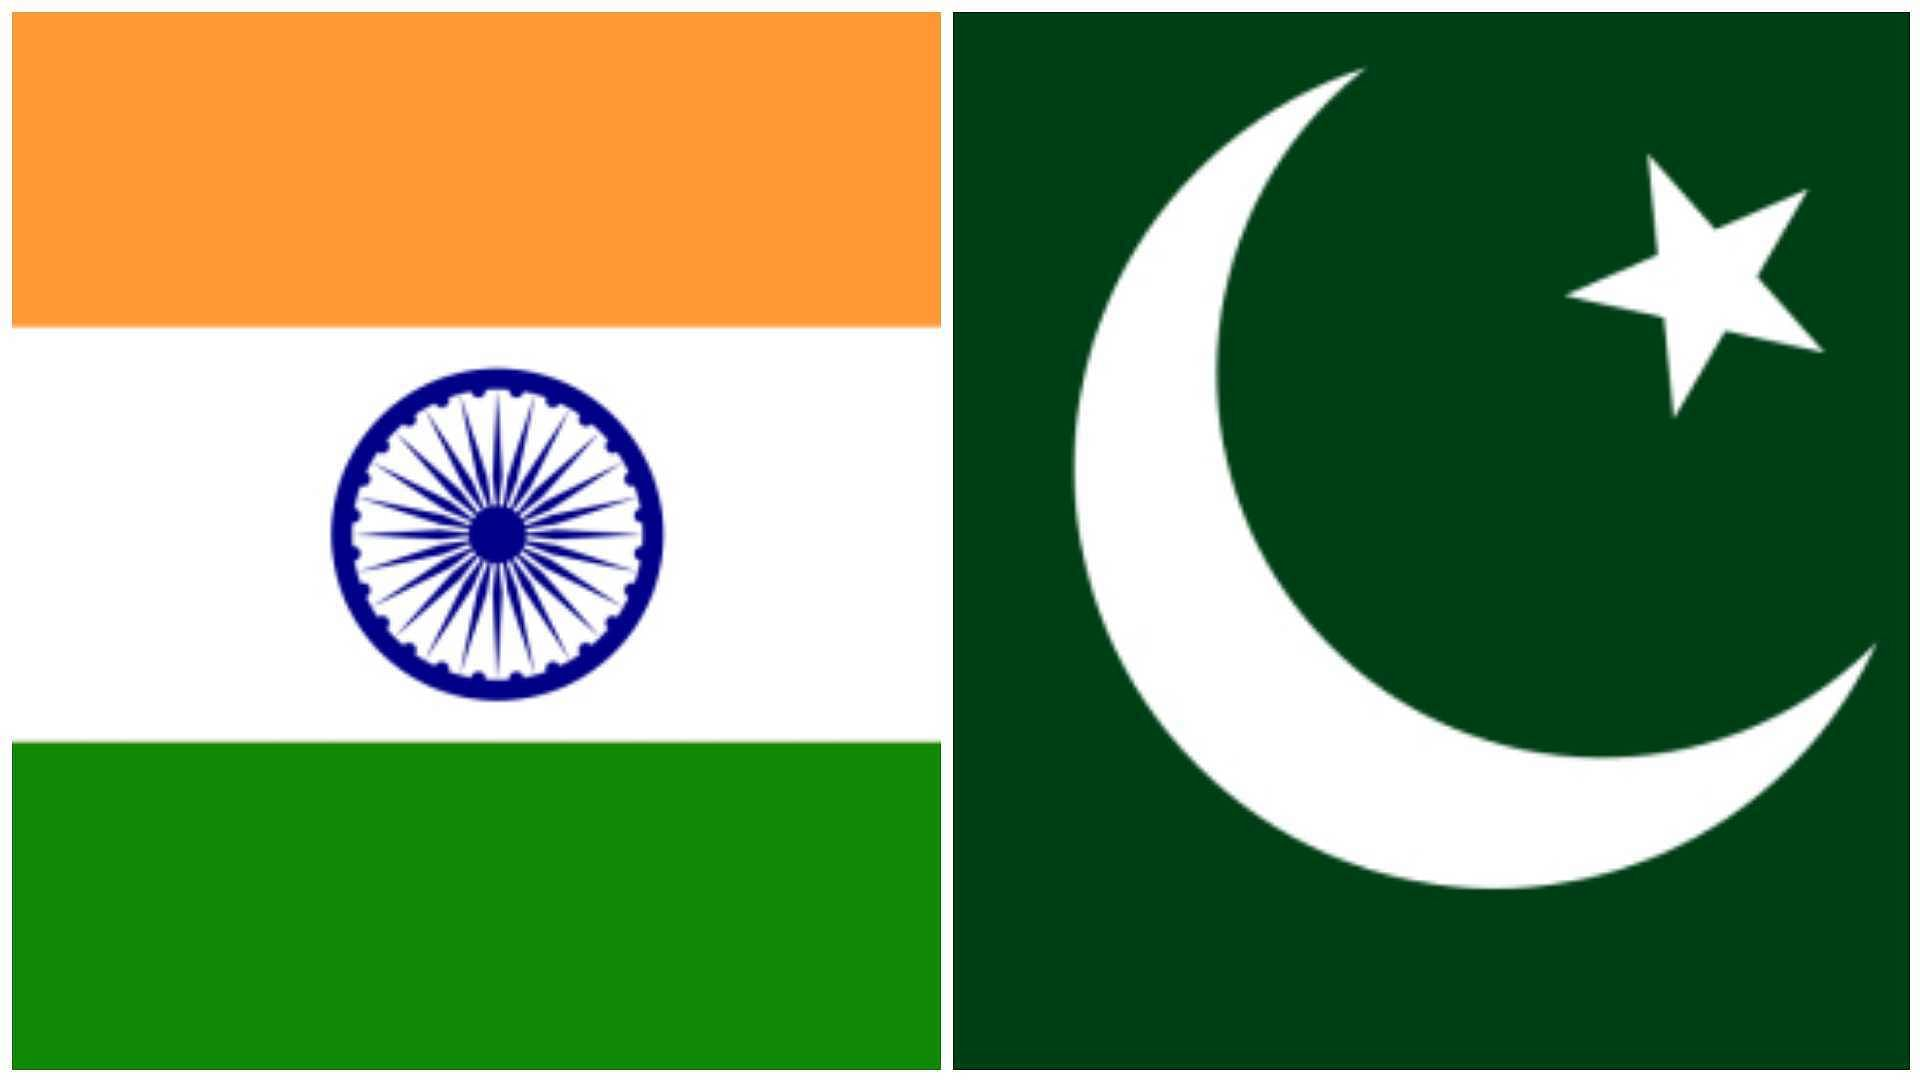 US Census Bureau posts Indian flag while wishing Pakistan on its  Independence Day